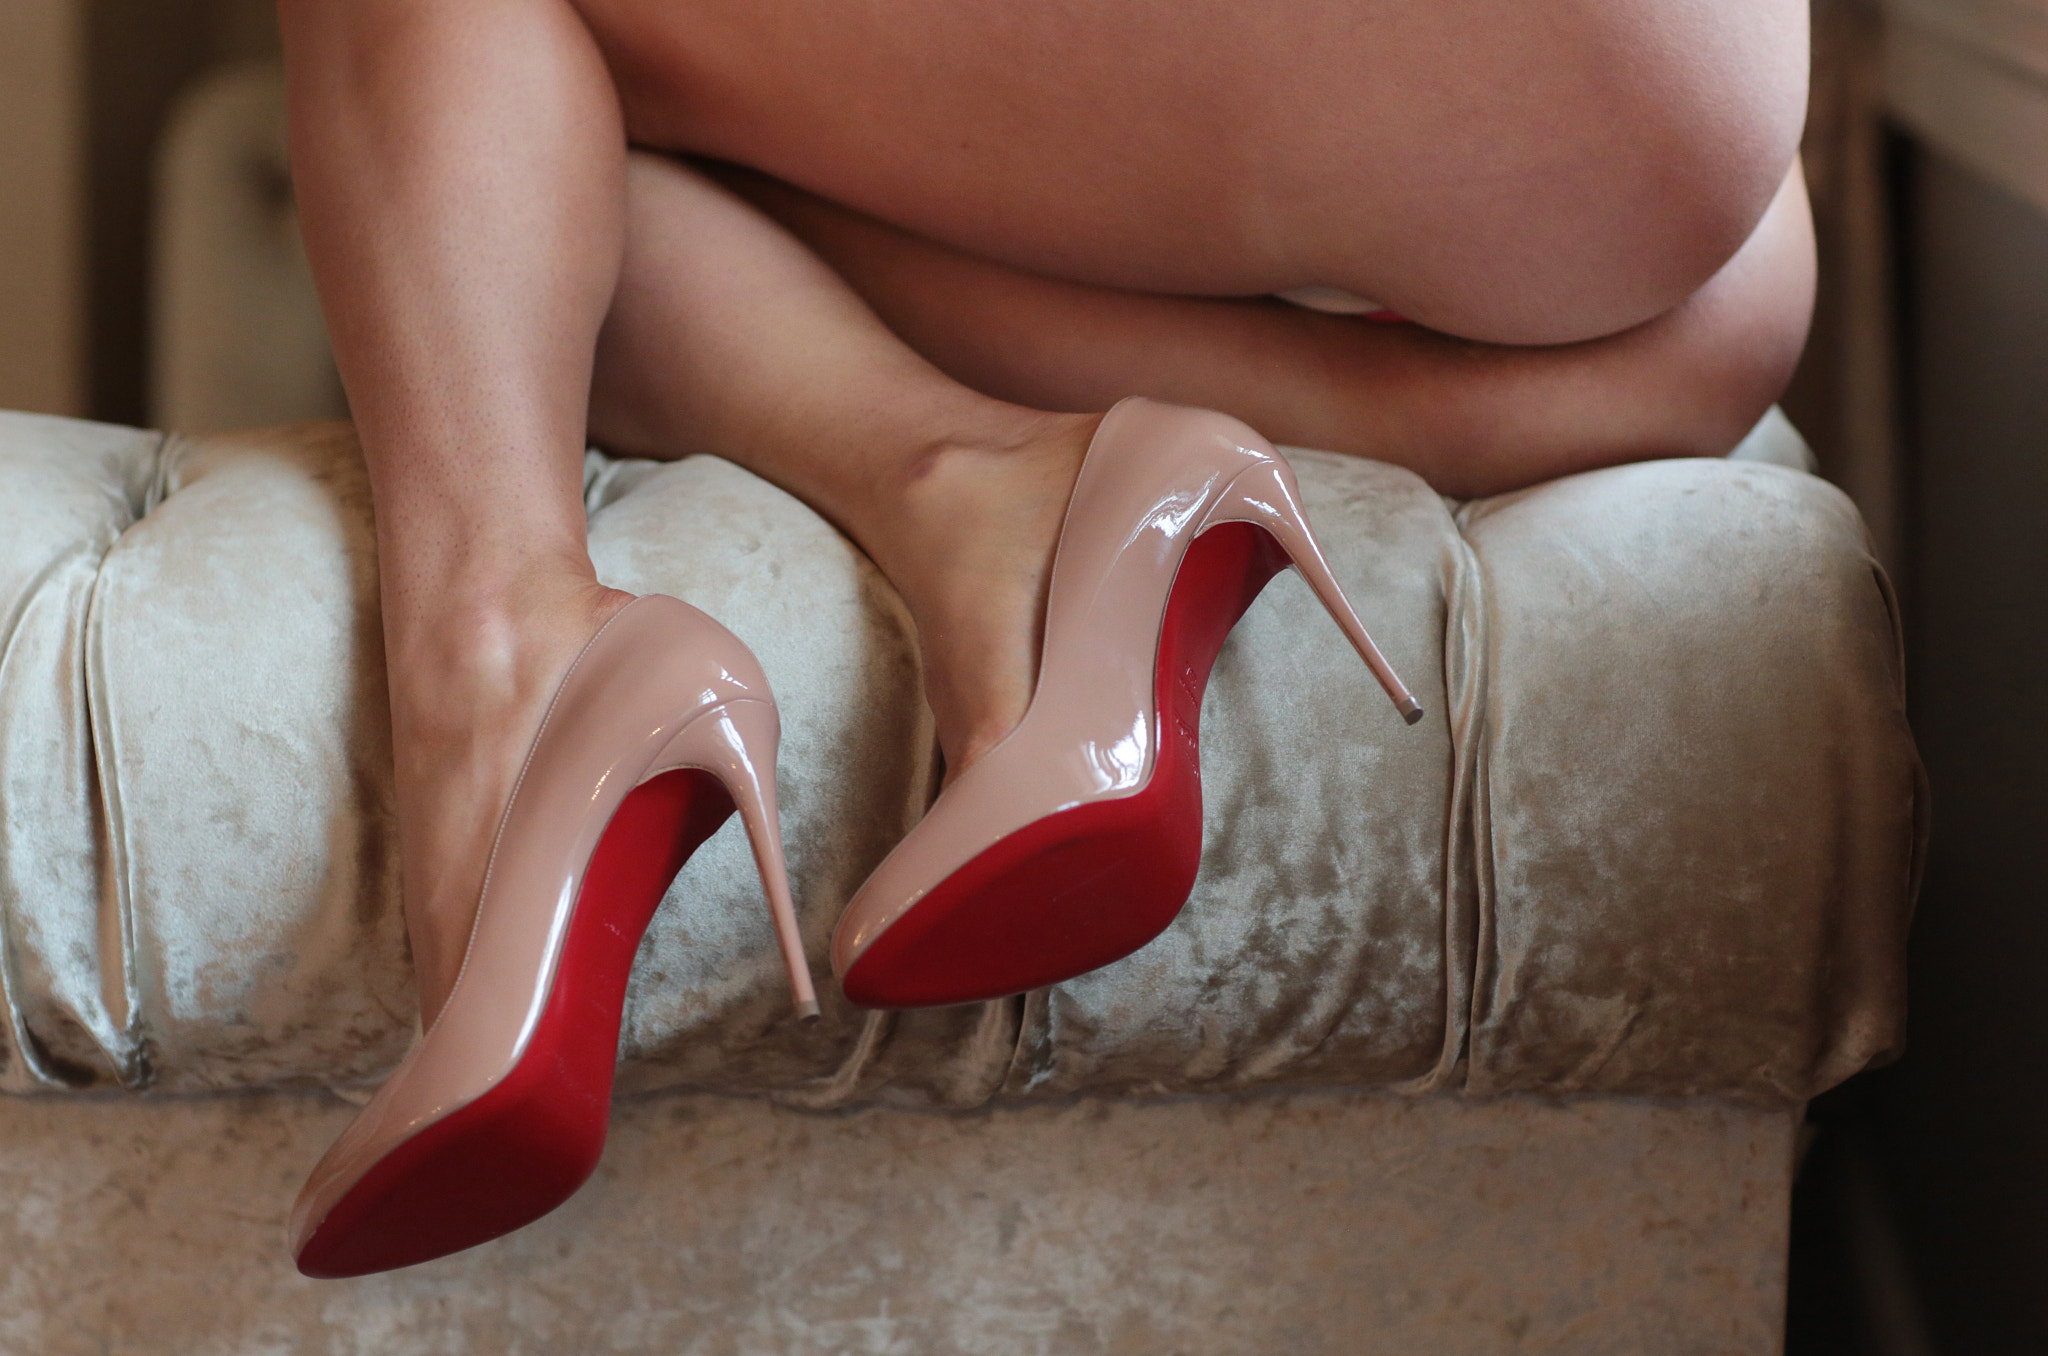 Slim Babe, Antonia Sainz Is Wearing Pink Shoes With High Heels While Masturbating On The Couch